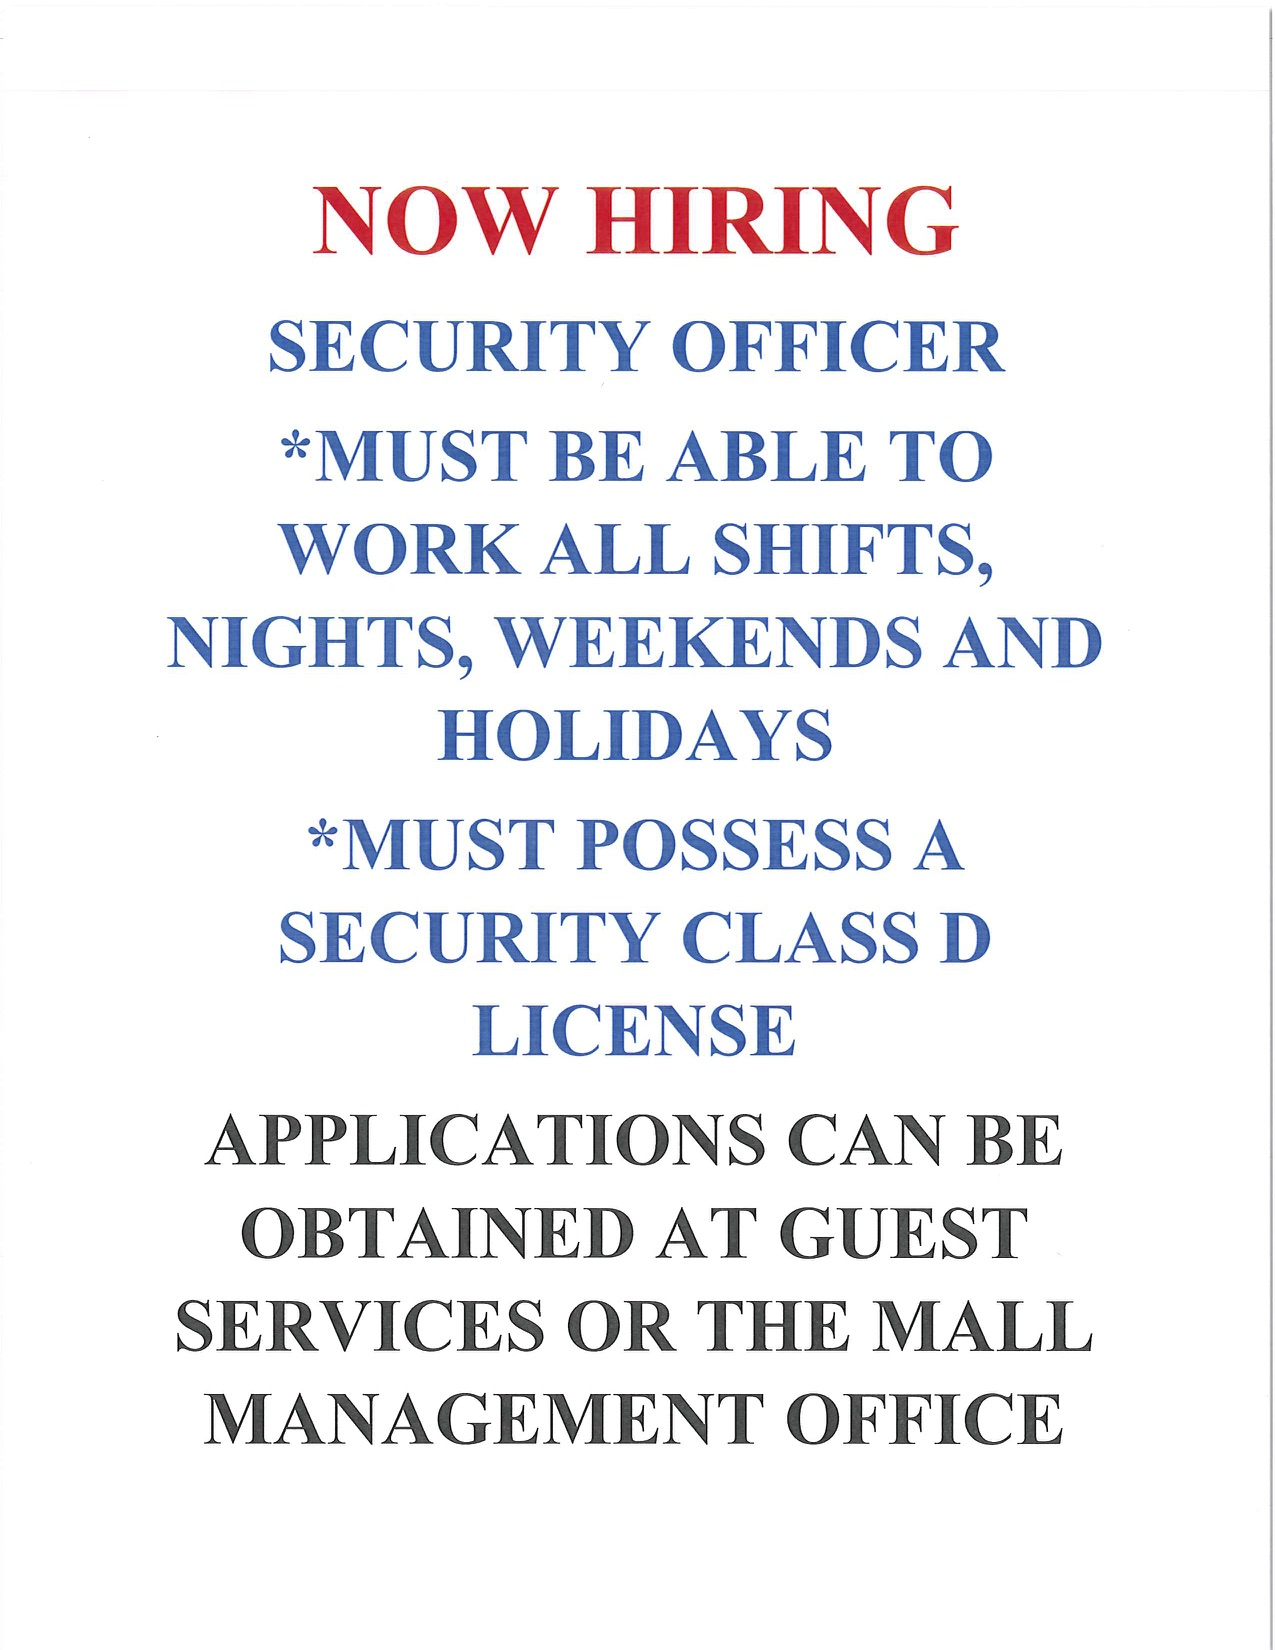 application information for security guard positions at Indian River Mall